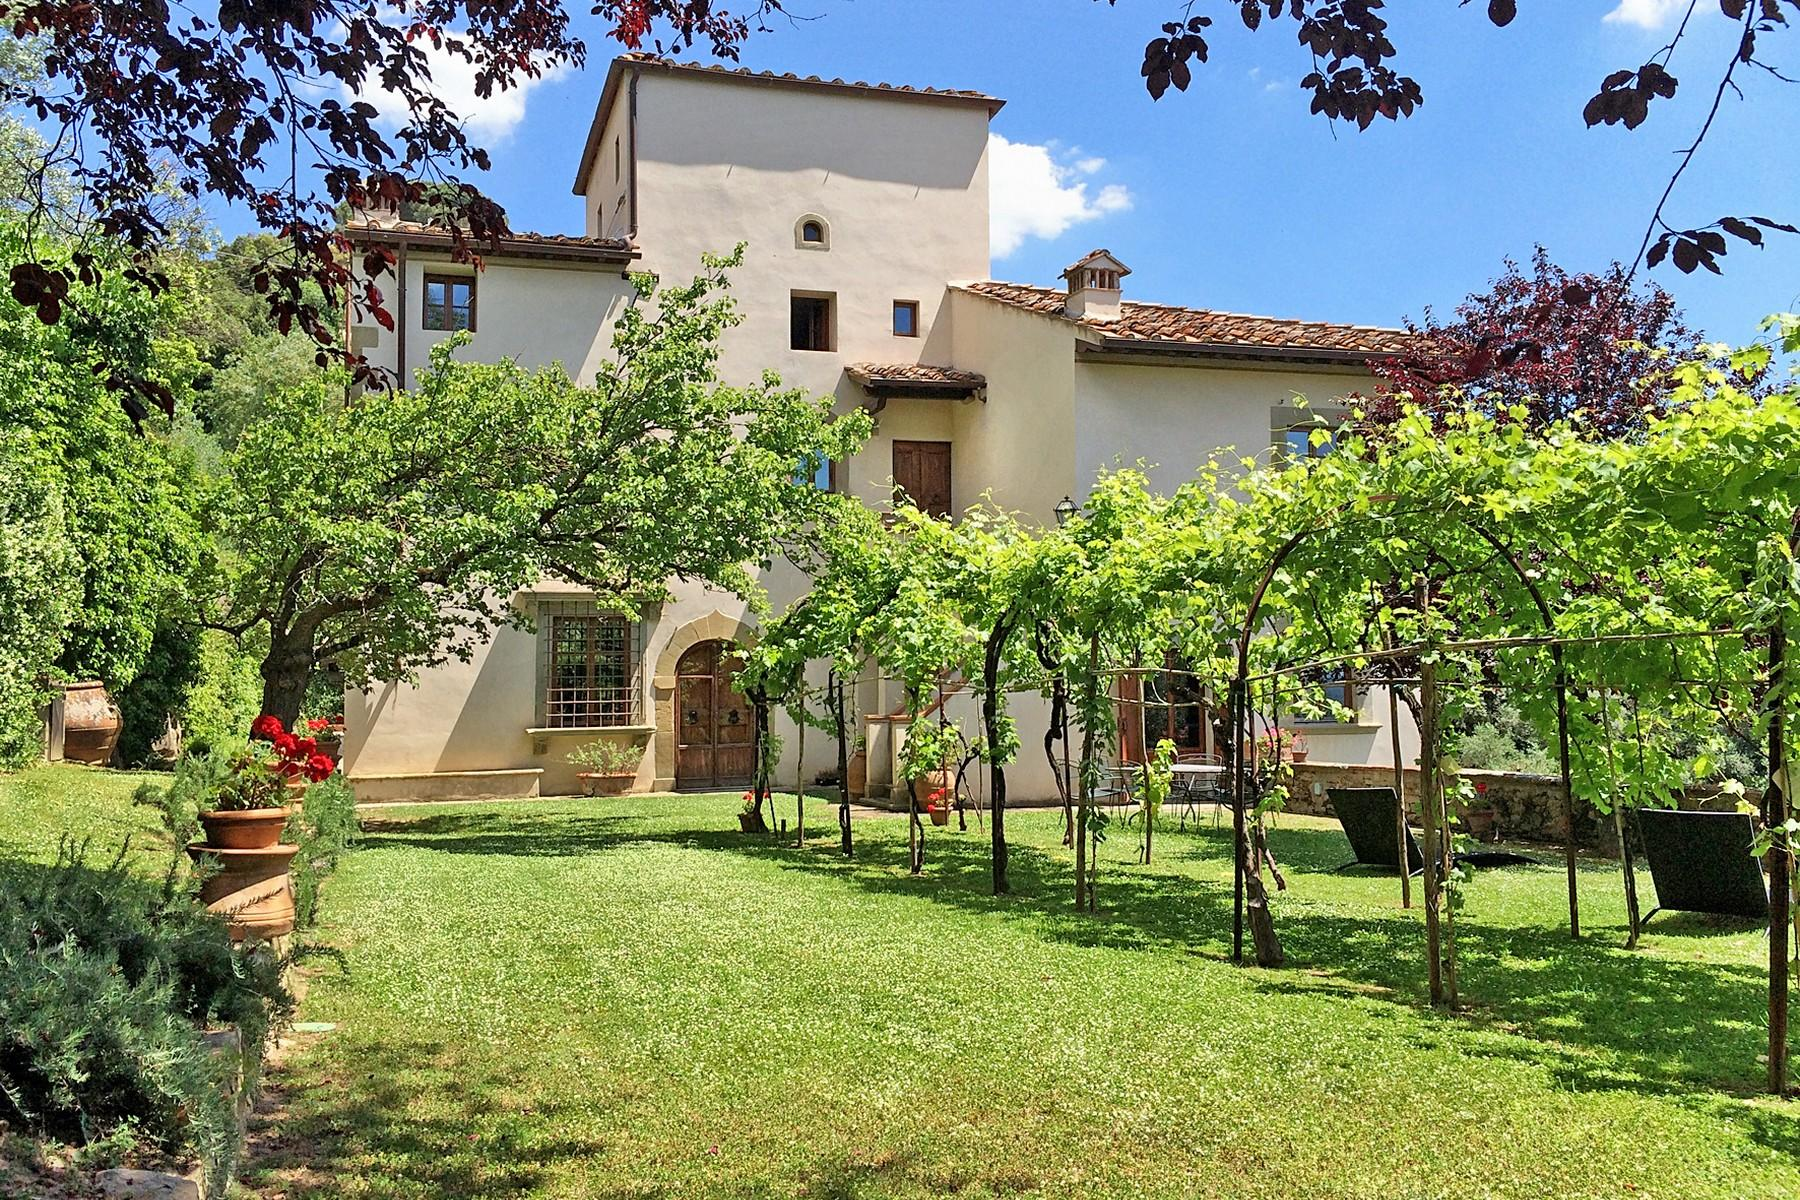 Marvellous villa with pool on the hills of Florence - 5